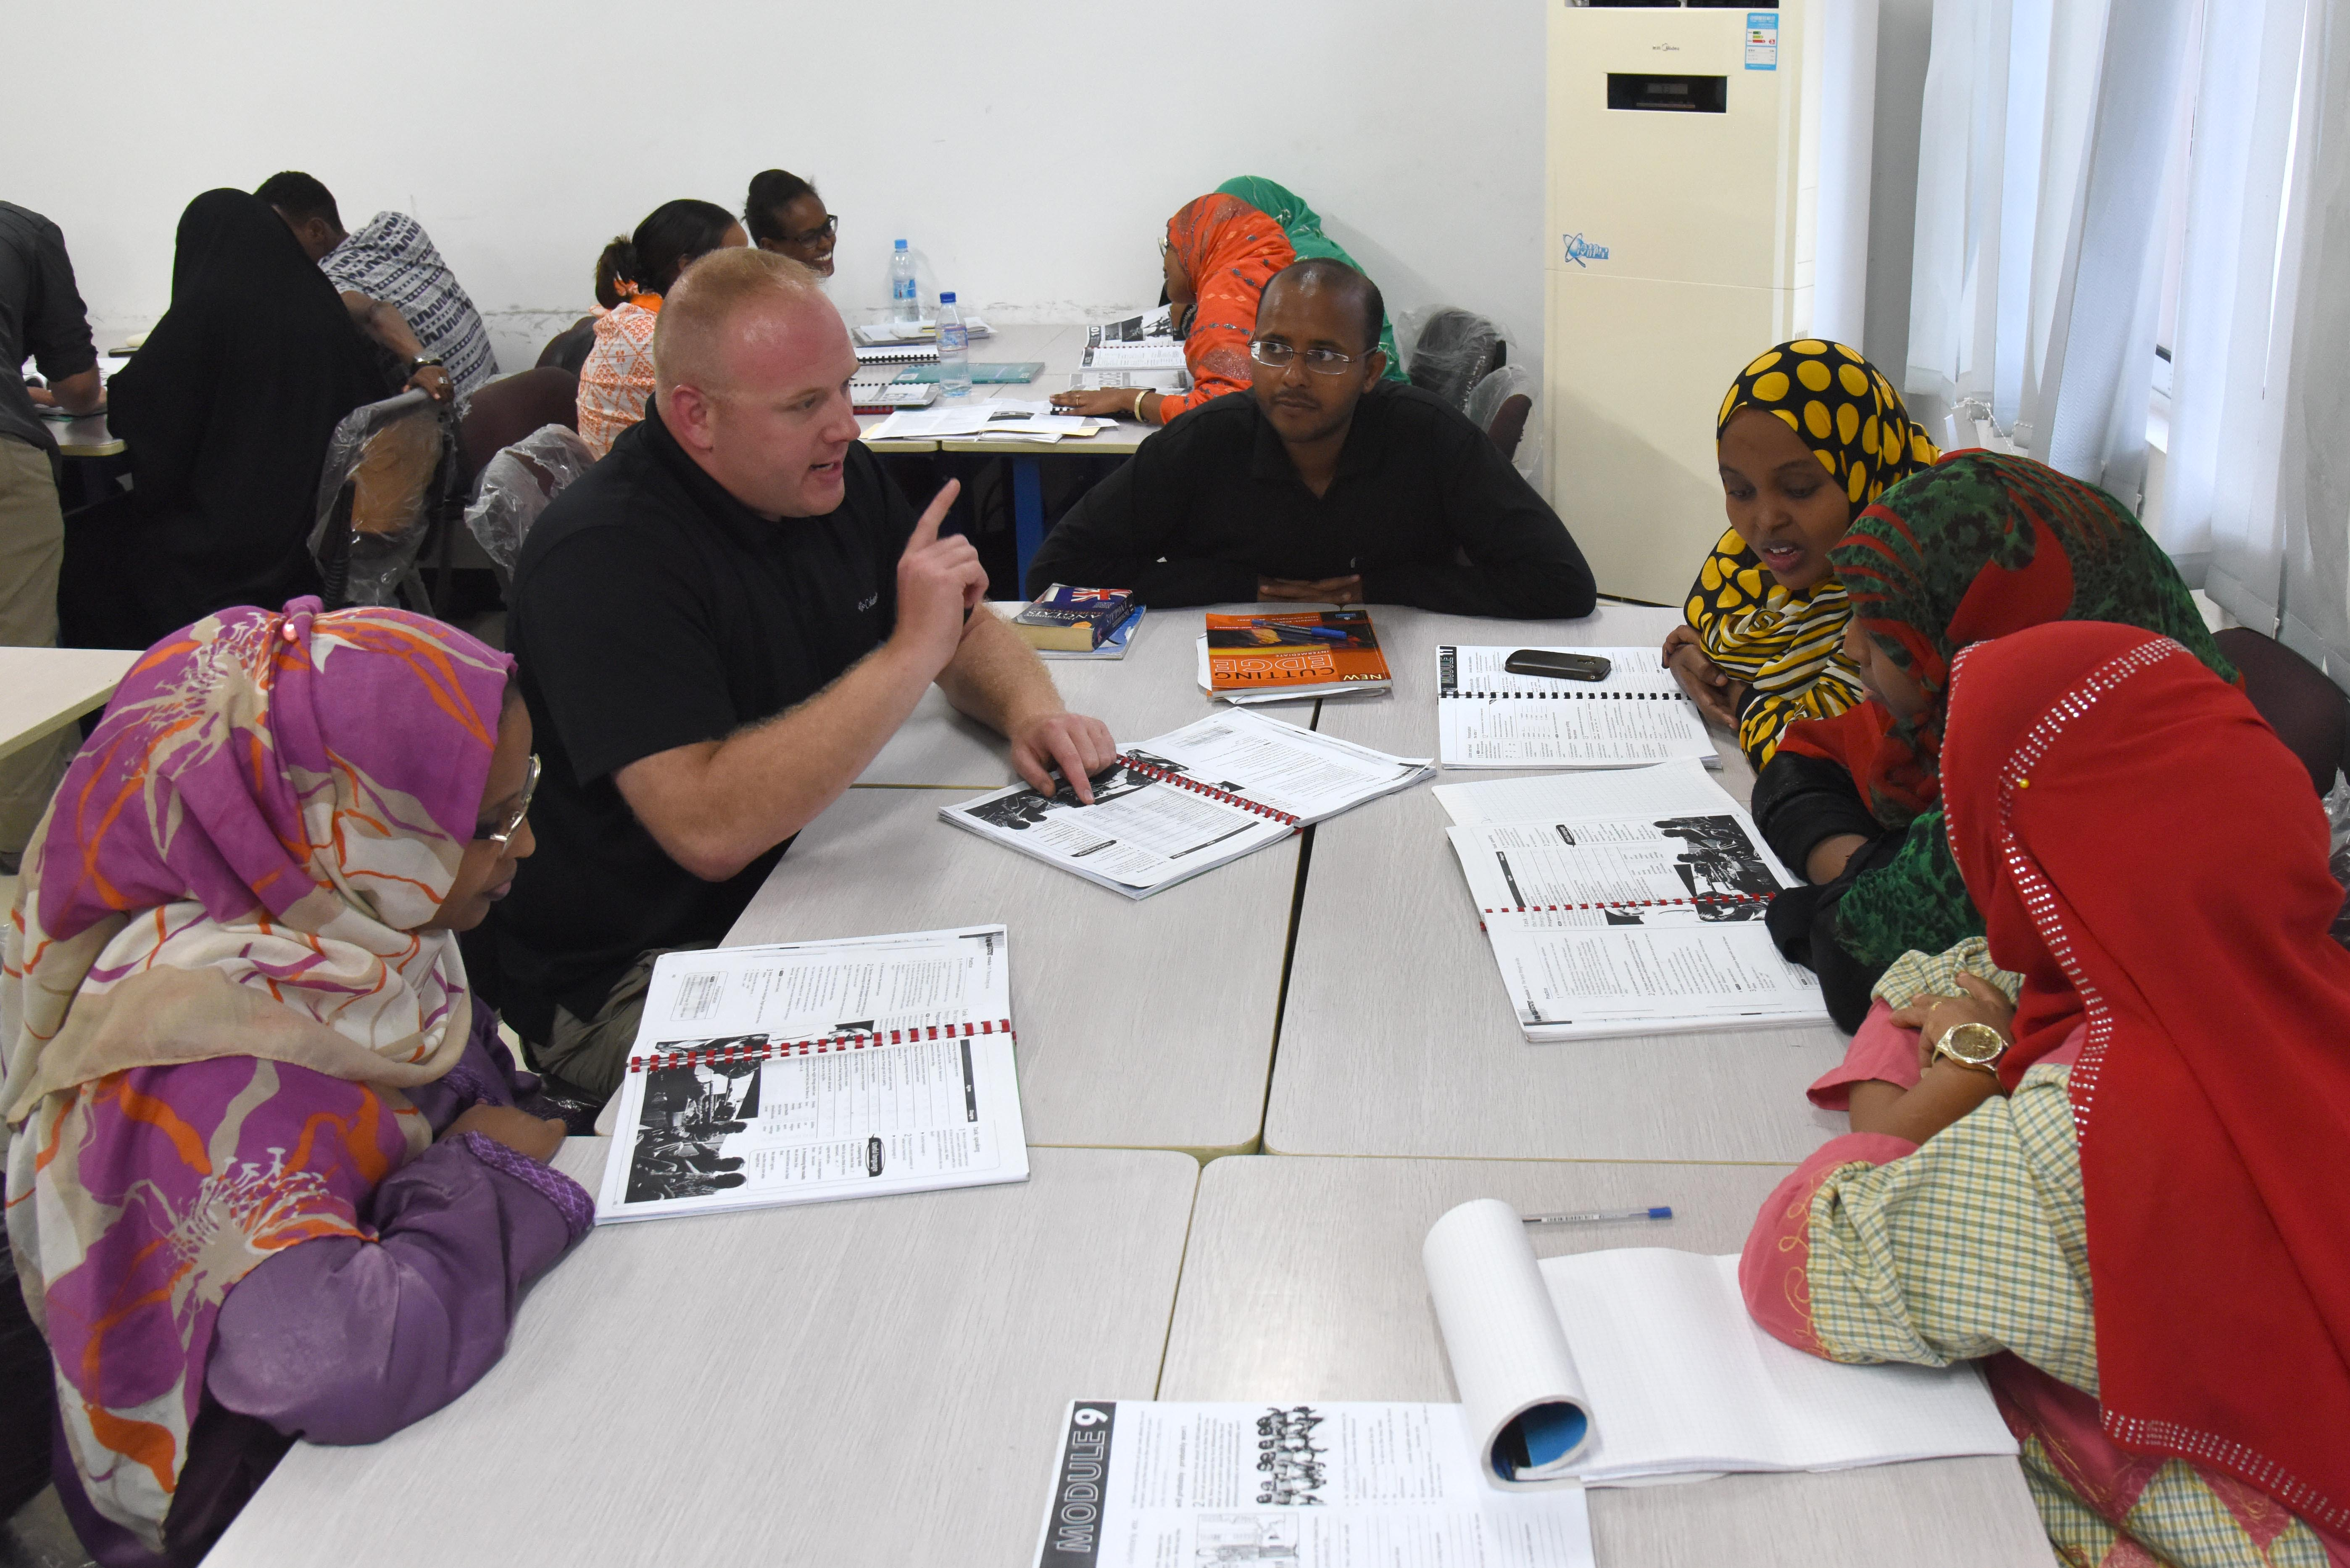 U.S. Army Maj. William Jones, 403rd Civil Affairs Battalion team chief, clarifies a phrase for Djiboutian students during an English discussion group at the Diplomatic Institute in Djibouti, Jan. 12, 2016. The English discussion groups not only help students practice their newly acquired language skills with native speakers, but they also acquaint them with U.S. military members on a personal level. (U.S. Air Force photo by Staff Sgt. Victoria Sneed)